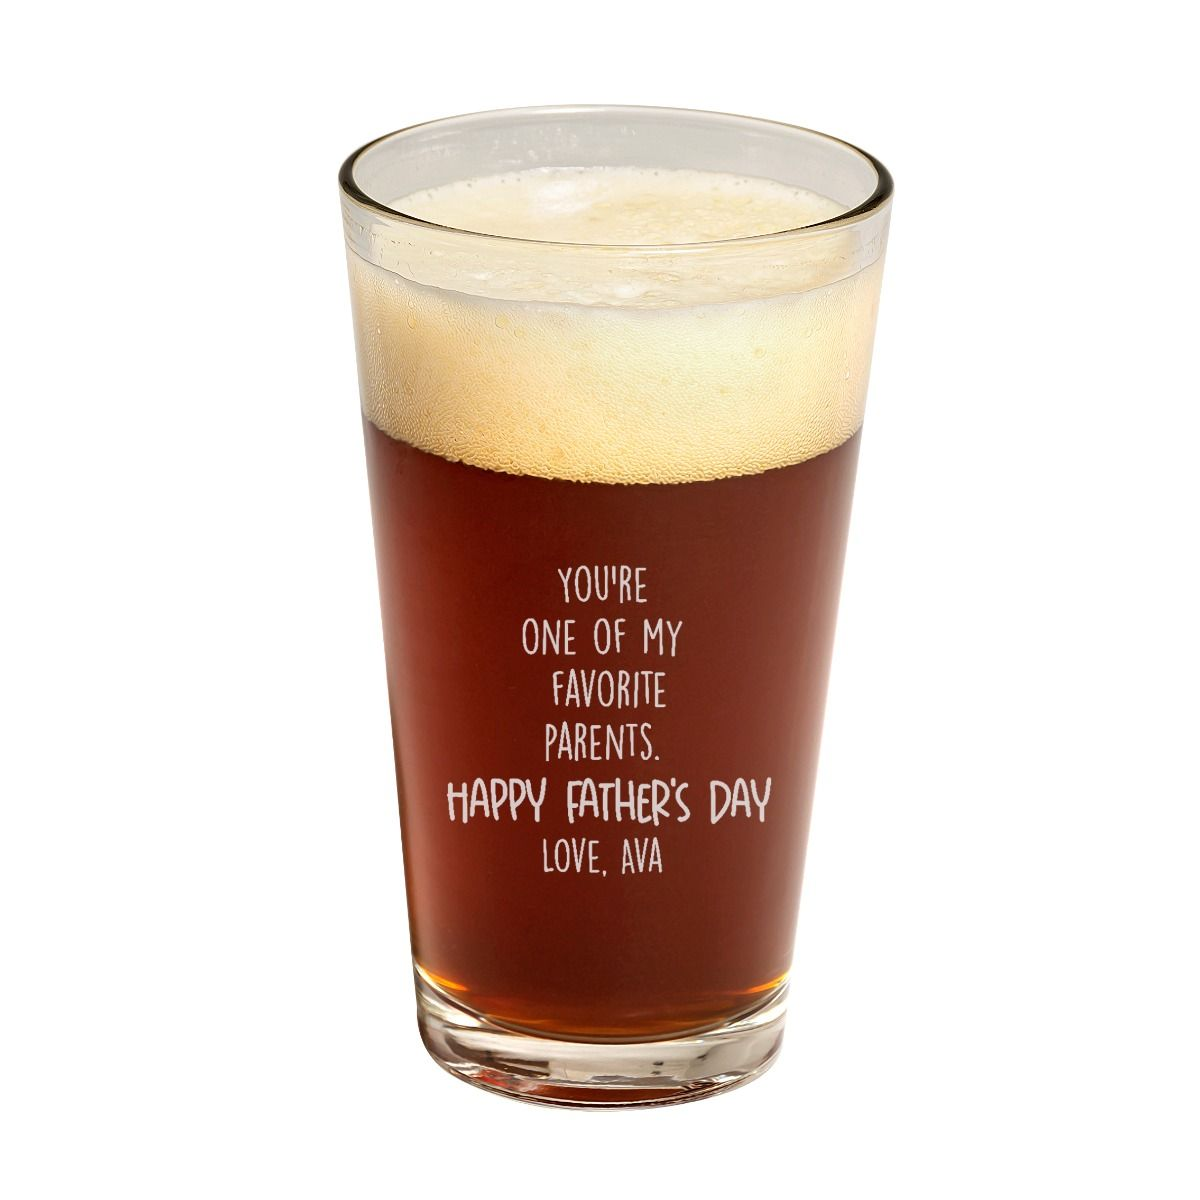 Fav Parent Father's Day Pint Glass